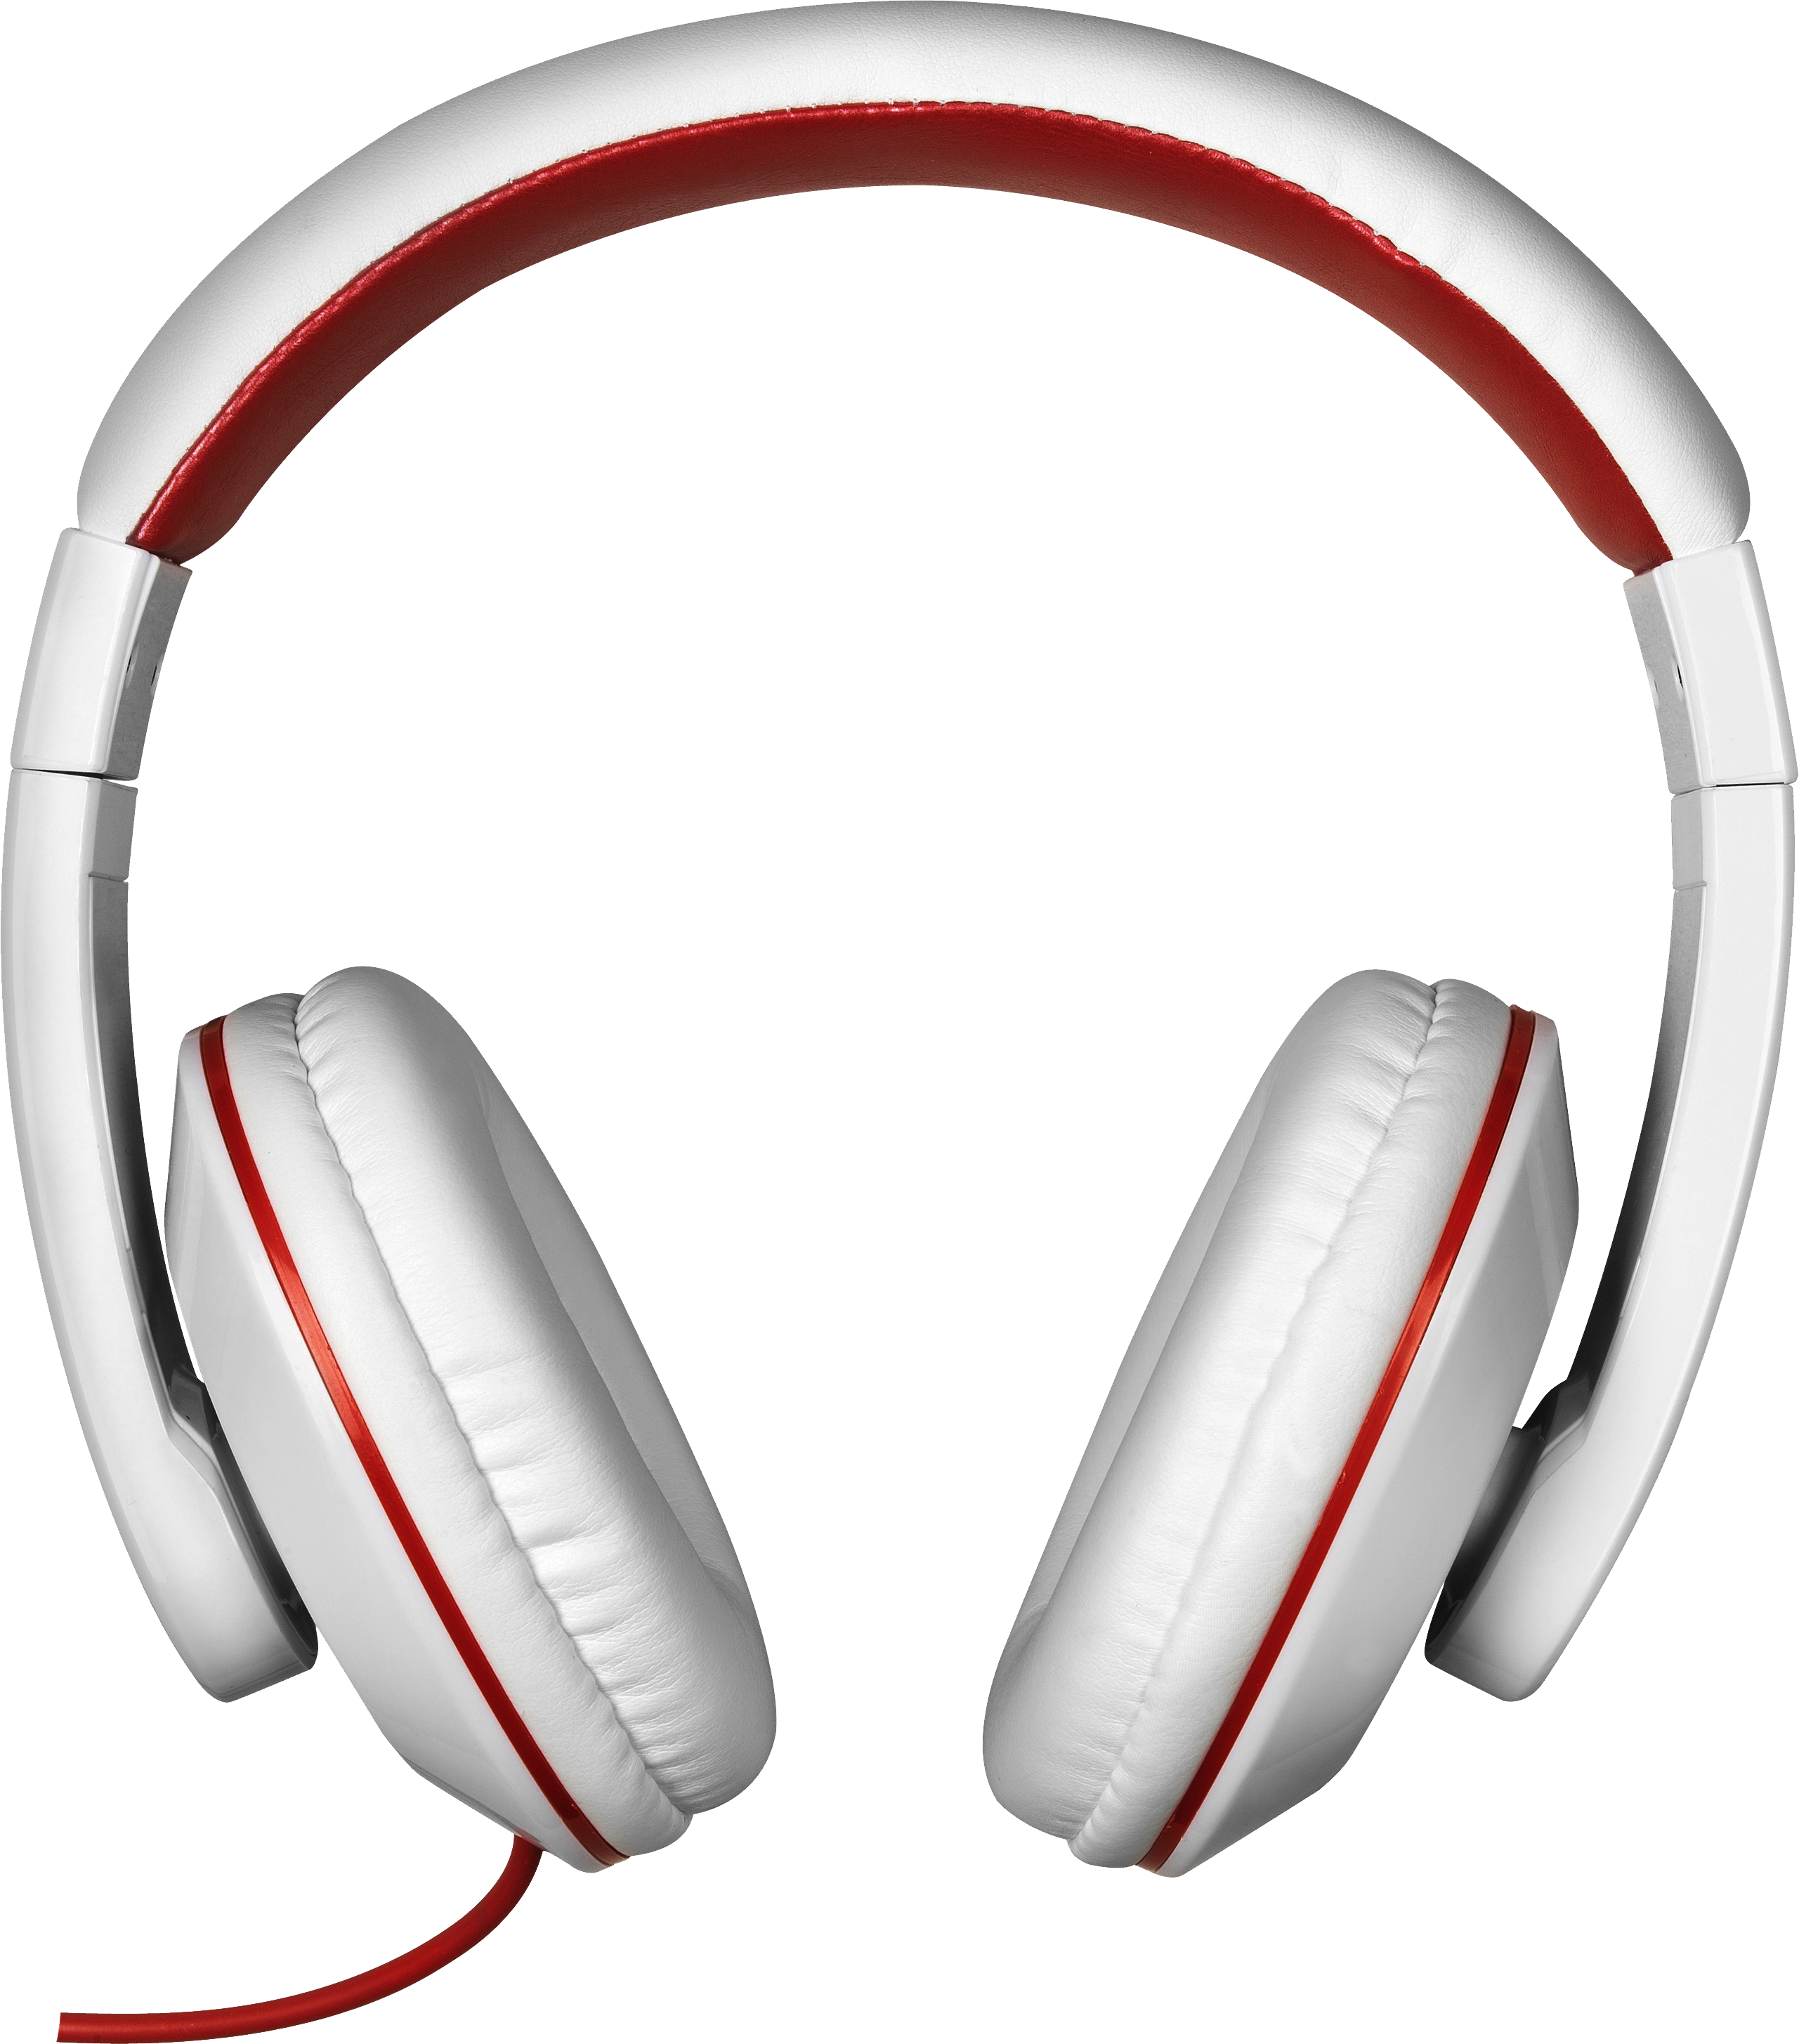 PNG Headphones Image Transparent